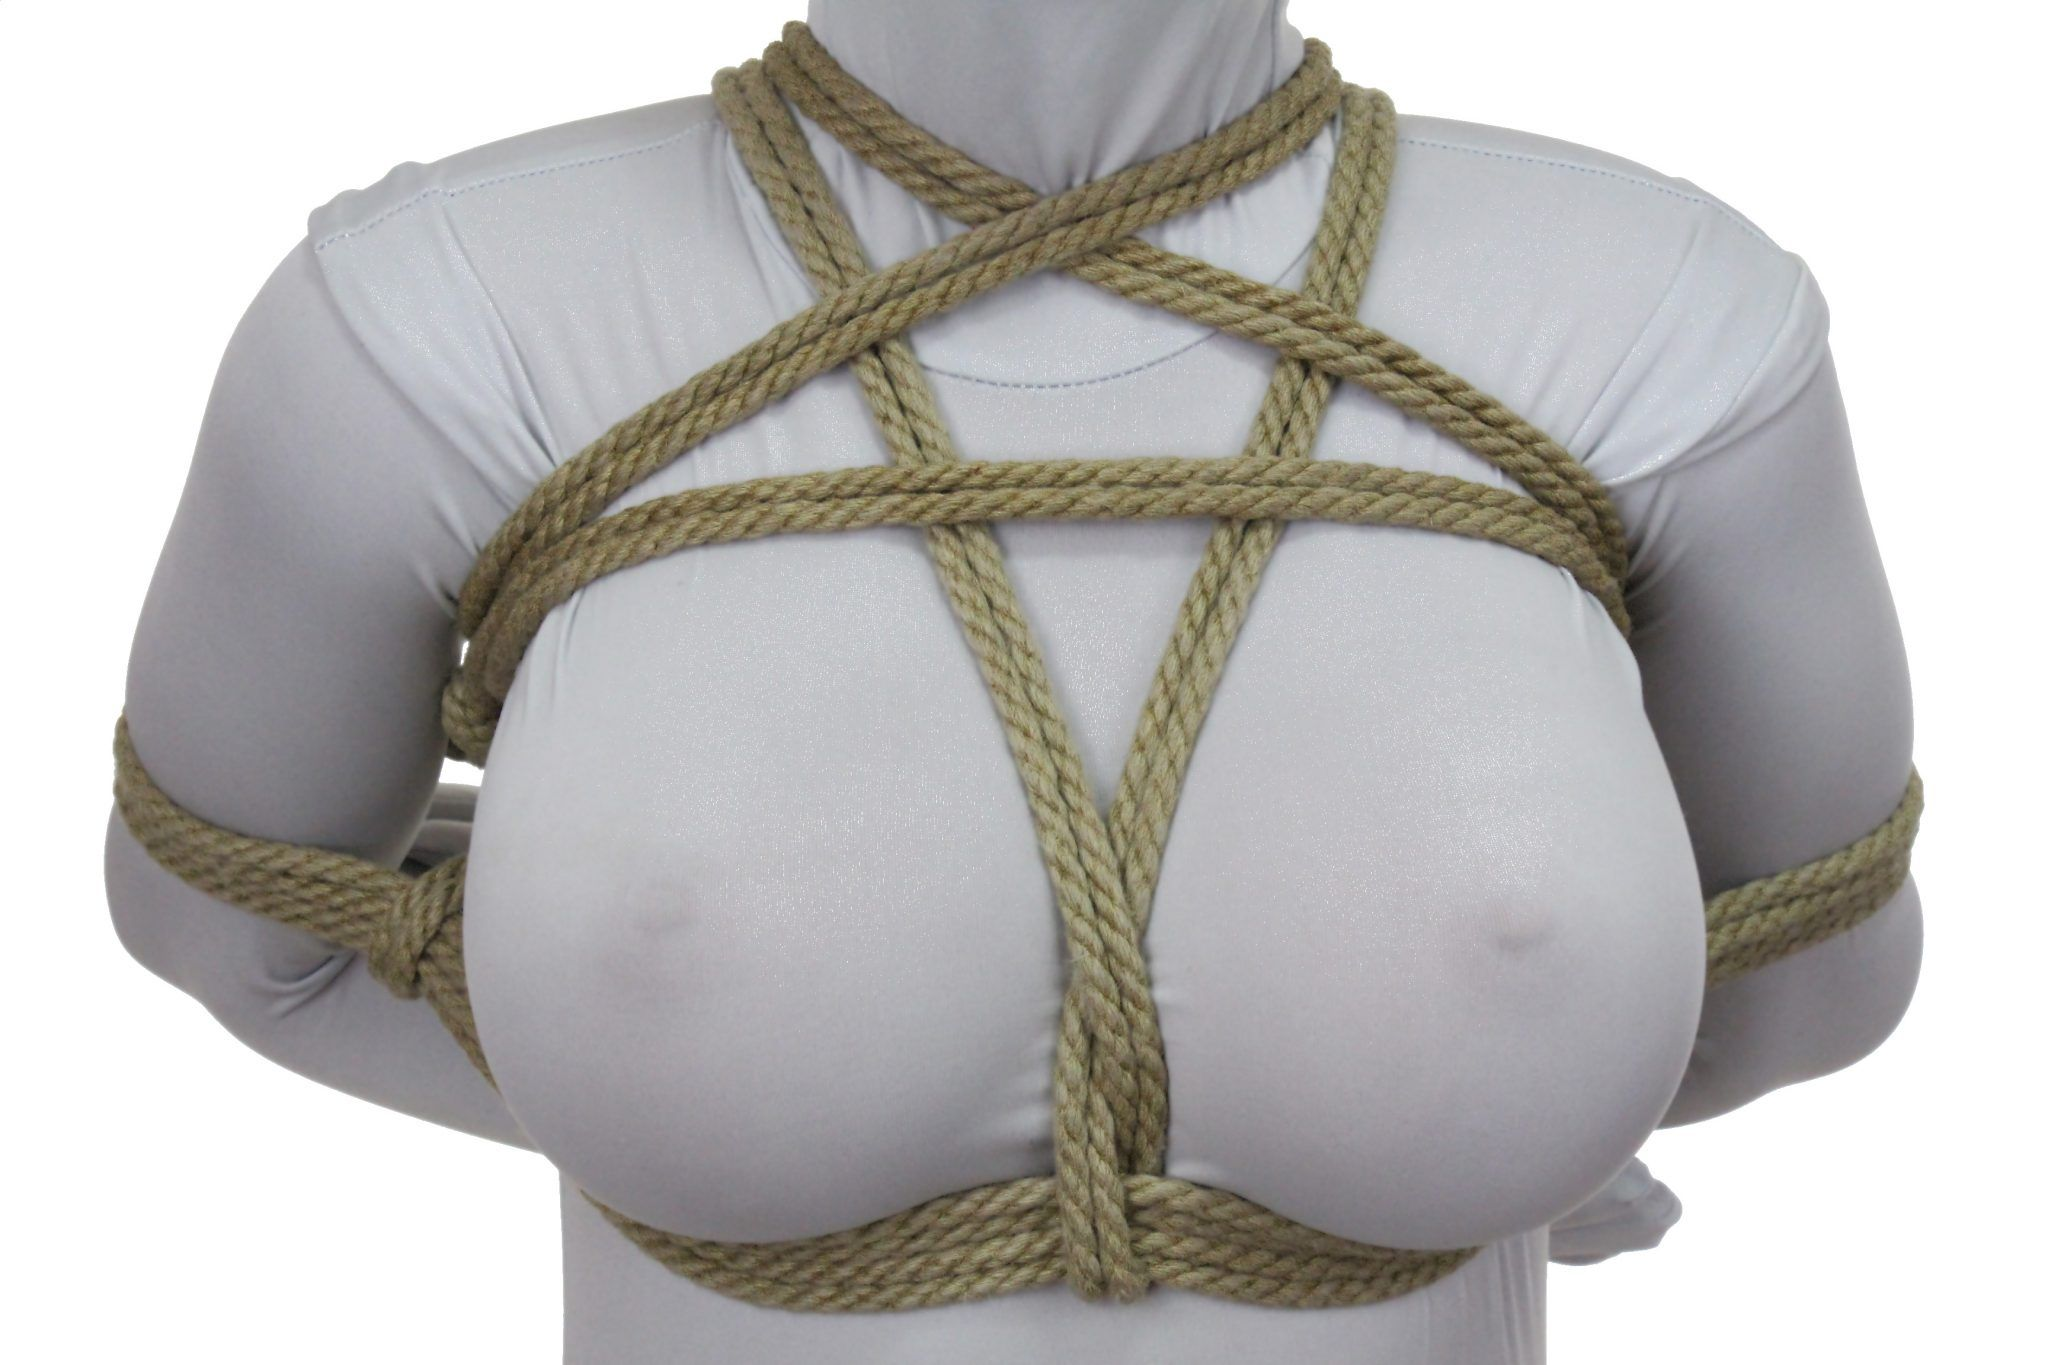 Erotic rope bondage and learning the knots